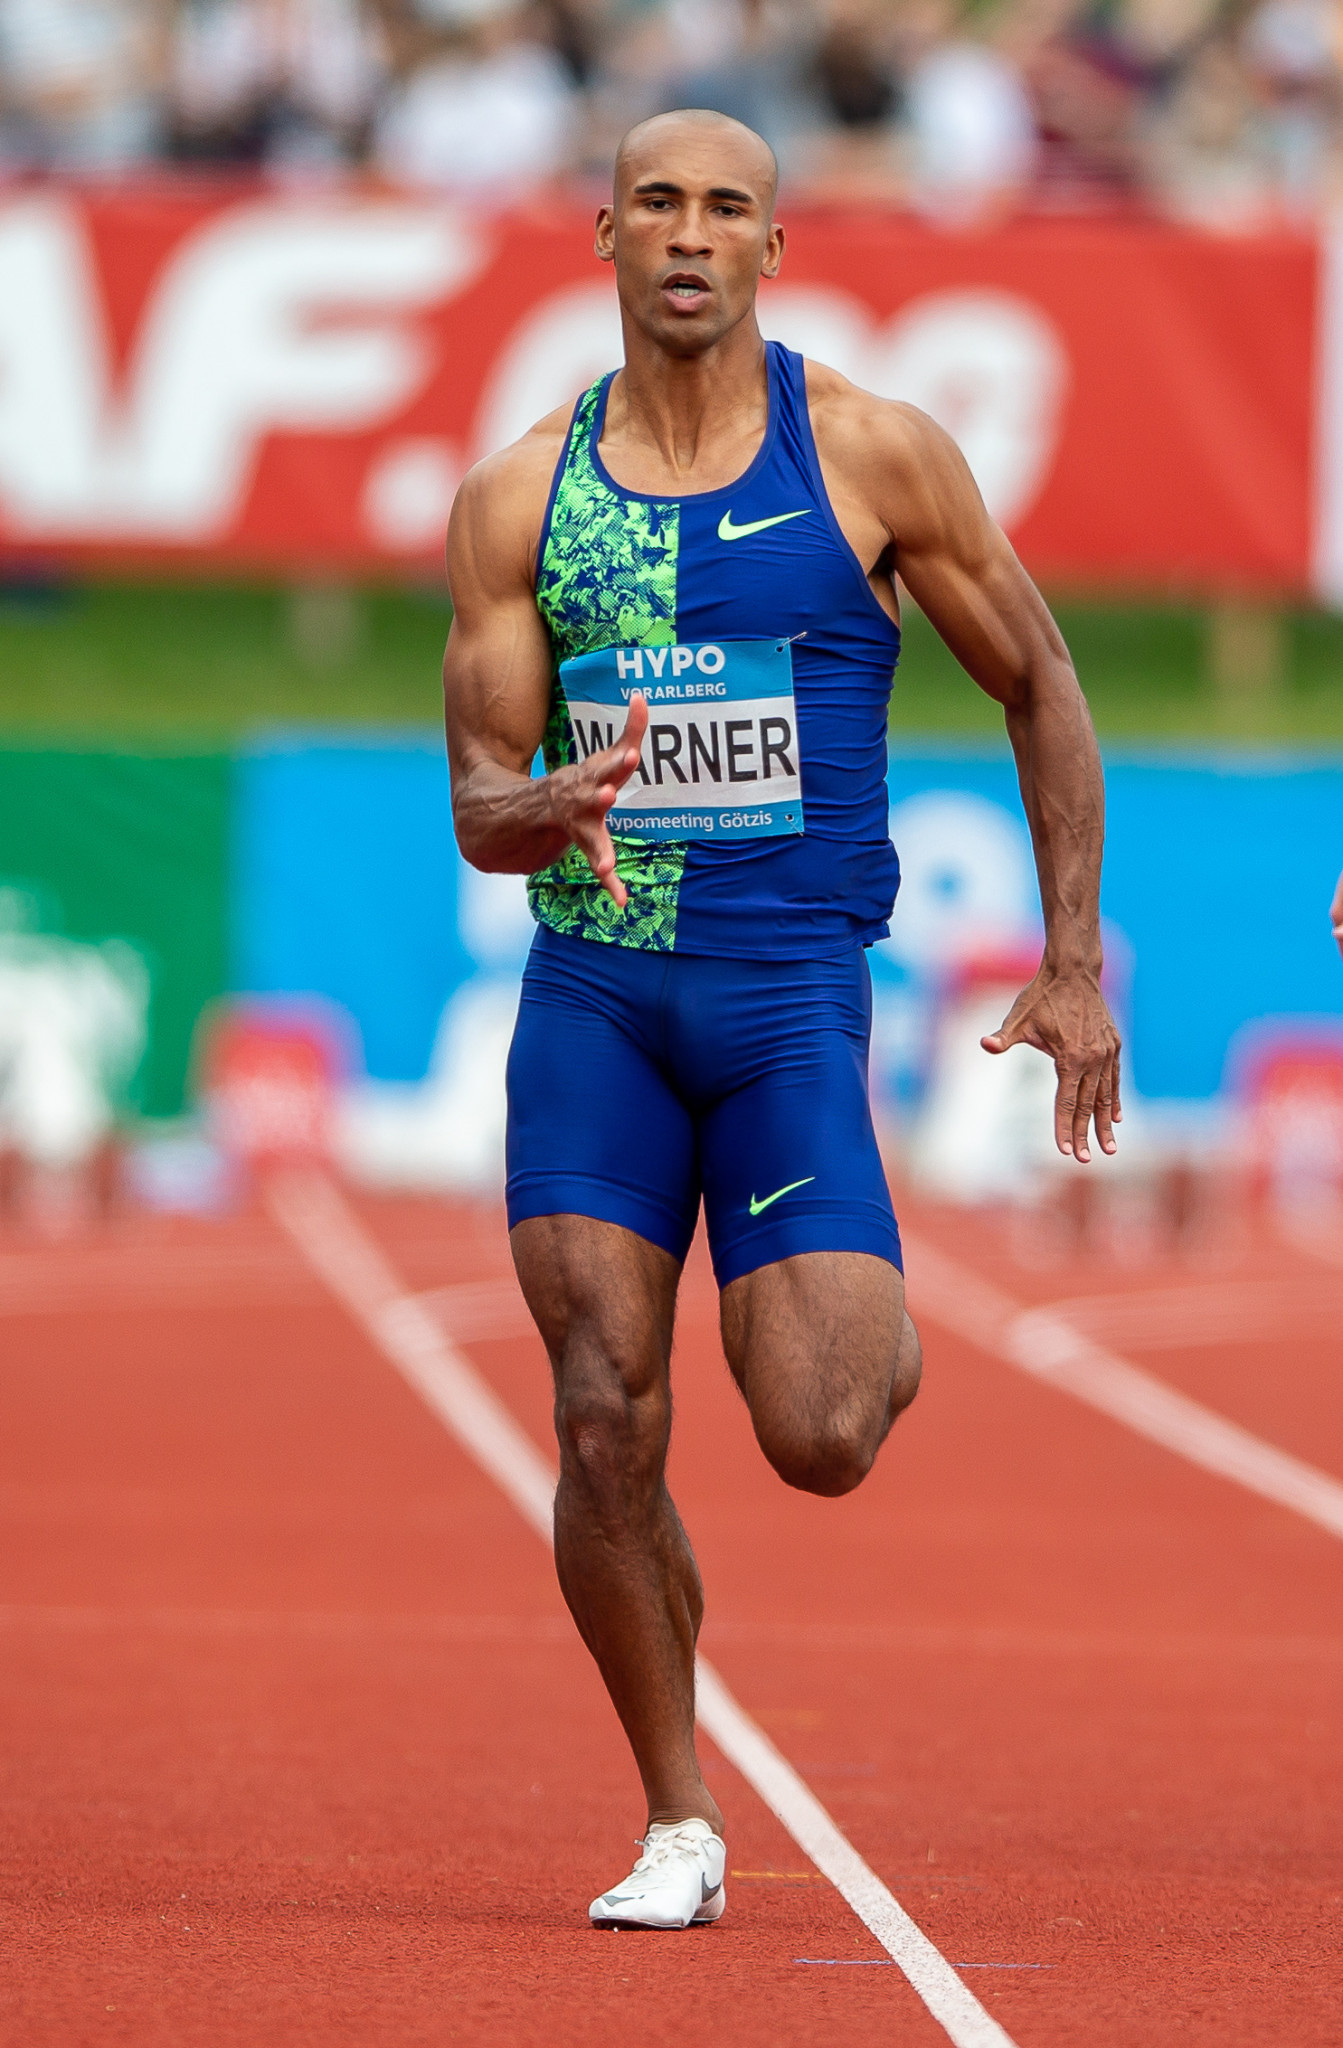 Damian Warner converted his overnight lead into victory in the decathlon ©Getty Images